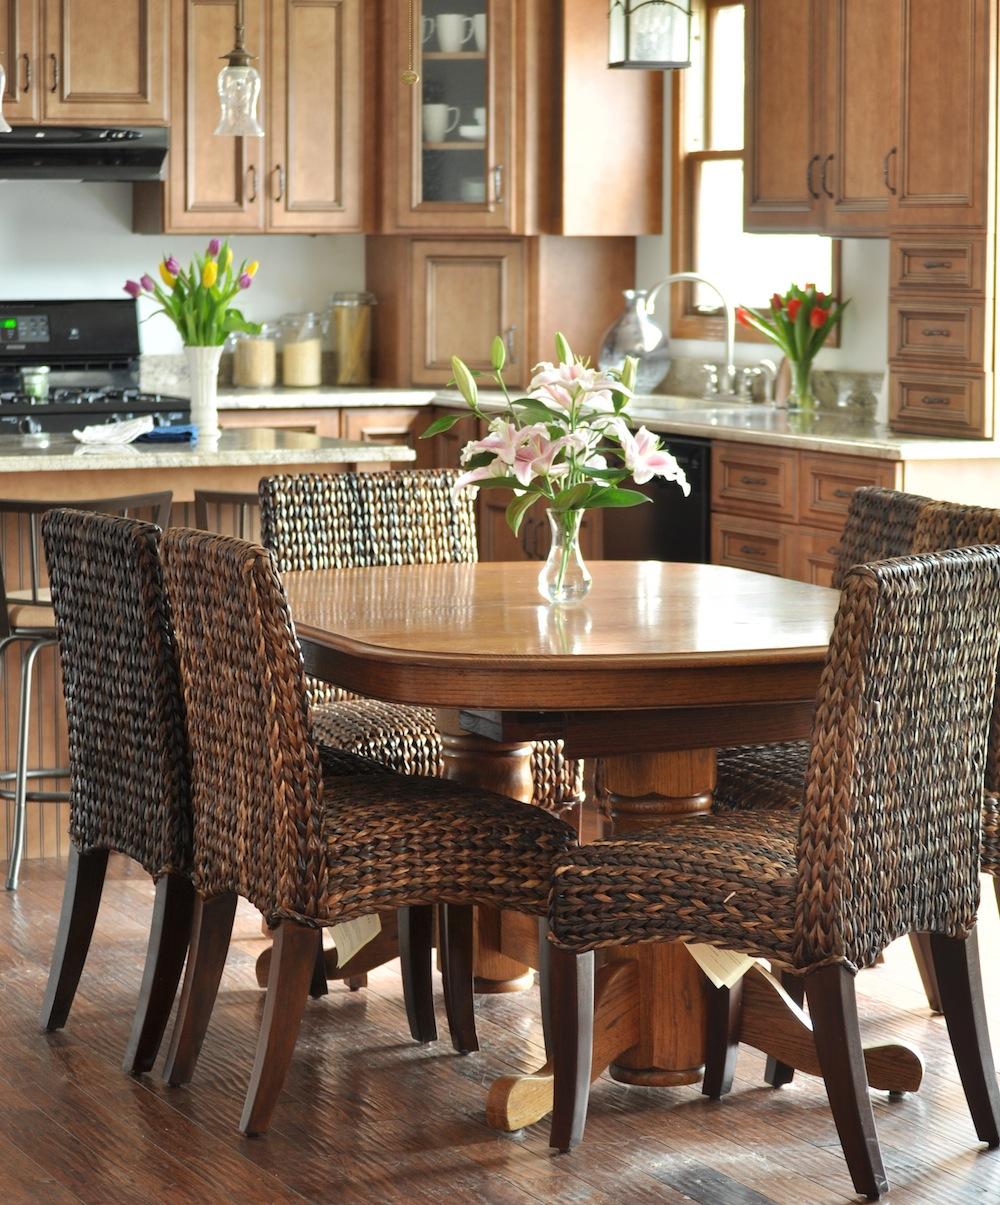 Pottery Barn Kitchen Table: Seagrass Dining Chairs